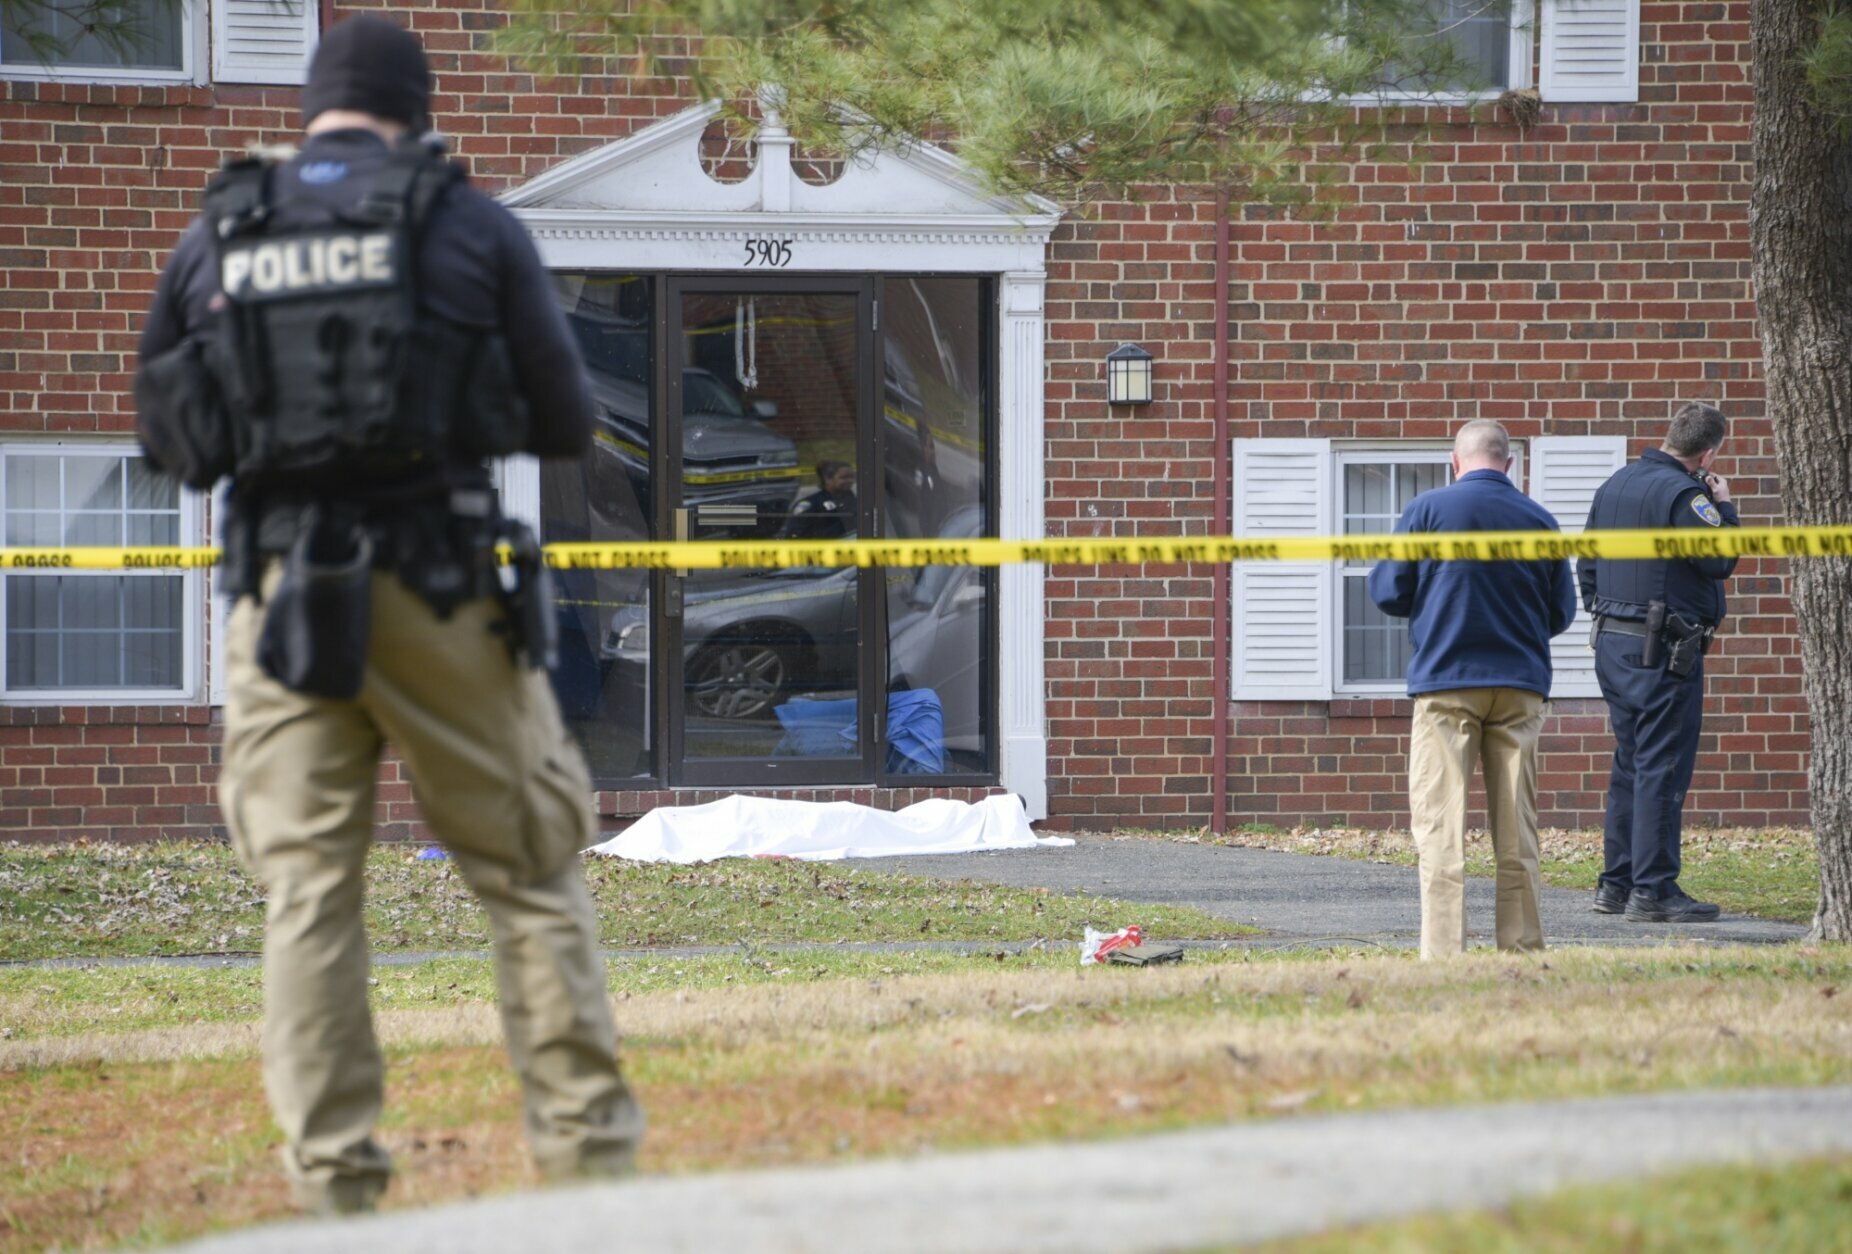 Law enforcement personnel work at the scene which appears to show a body covered under a white blanket outside of an apartment, Wednesday, Feb. 12, 2020, in Baltimore. Two law enforcement officers with a fugitive task force were injured and a suspect died in the shooting, the U.S. Marshals Service said. (Ulysses Muñoz/The Baltimore Sun via AP)